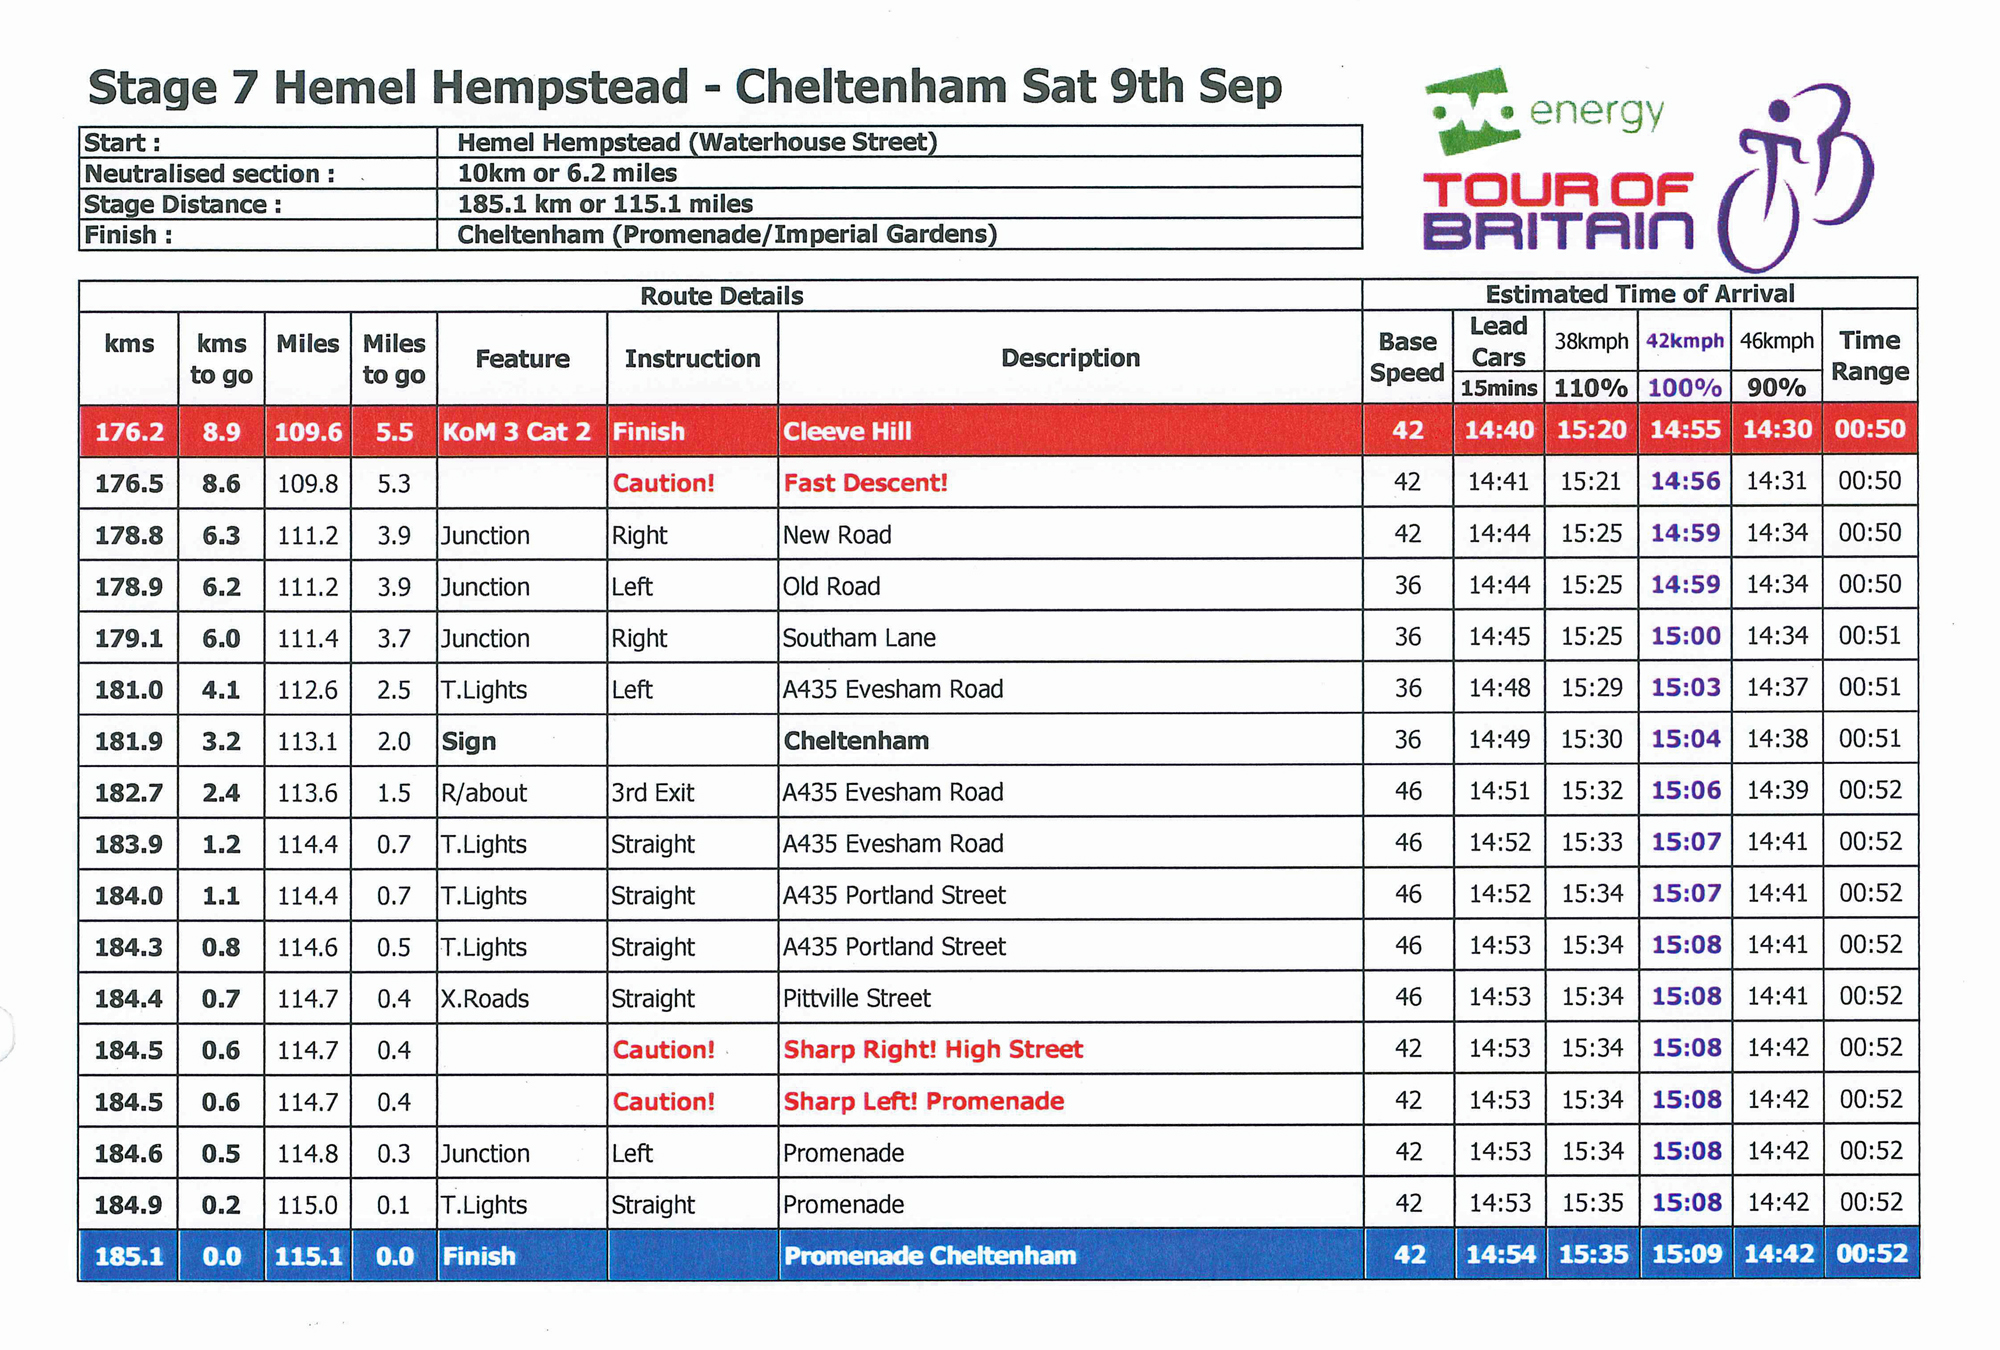 Route timings for the Cheltenham section of Stage 7